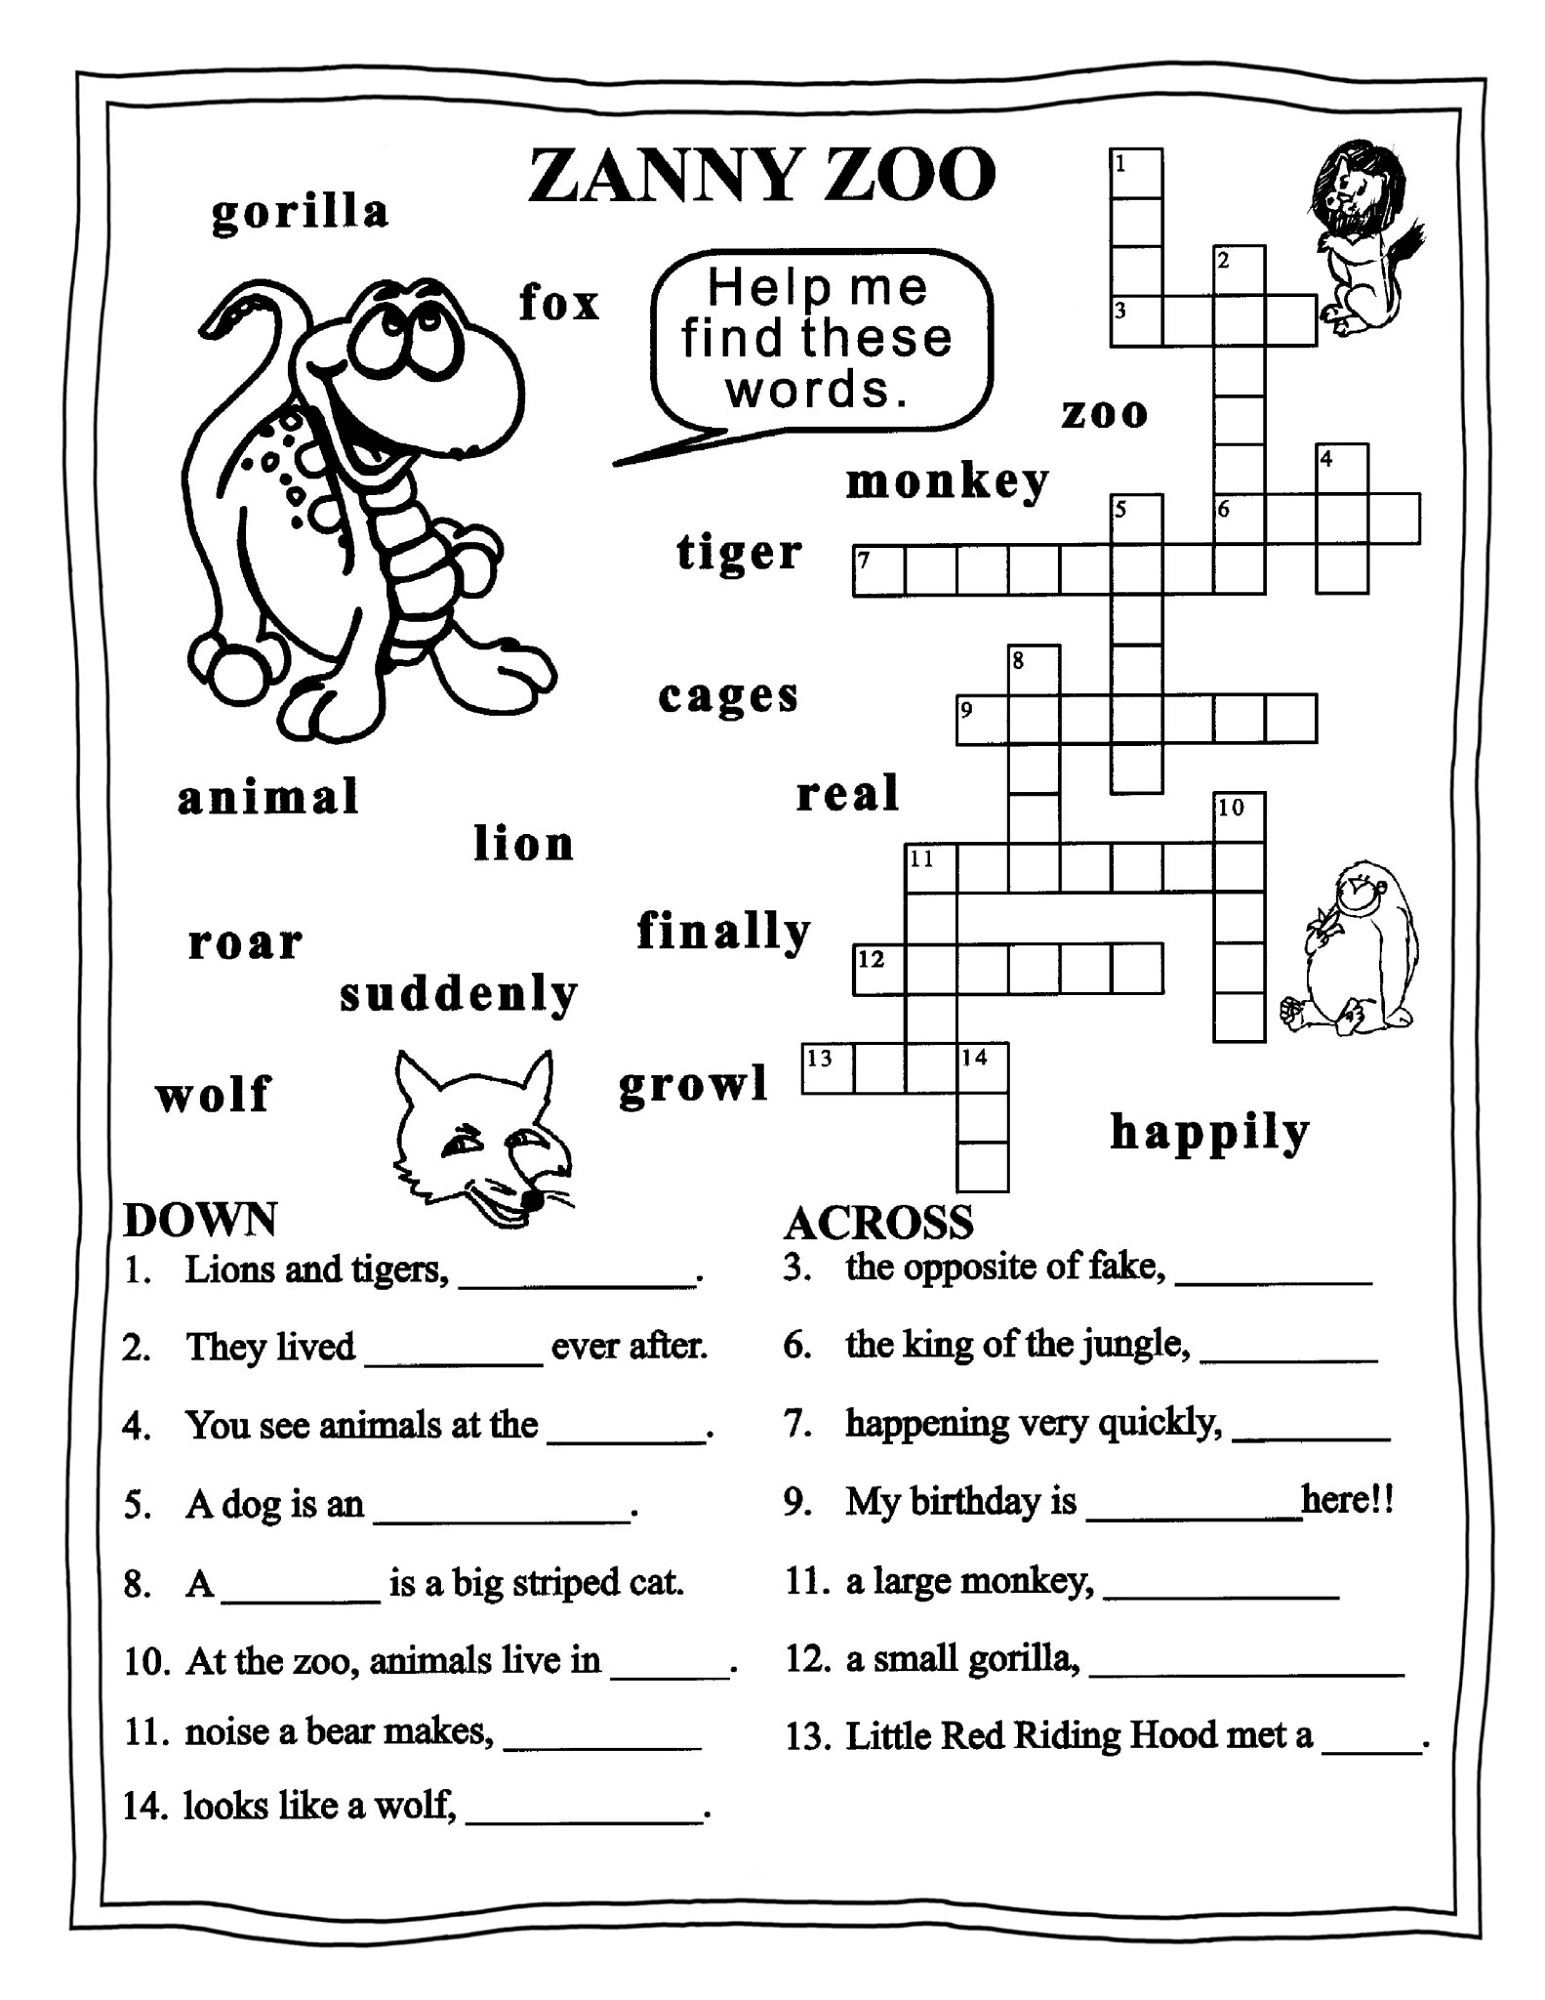 Worksheets For Grade 3 English | Learning Printable | Educative - Printable English Puzzle